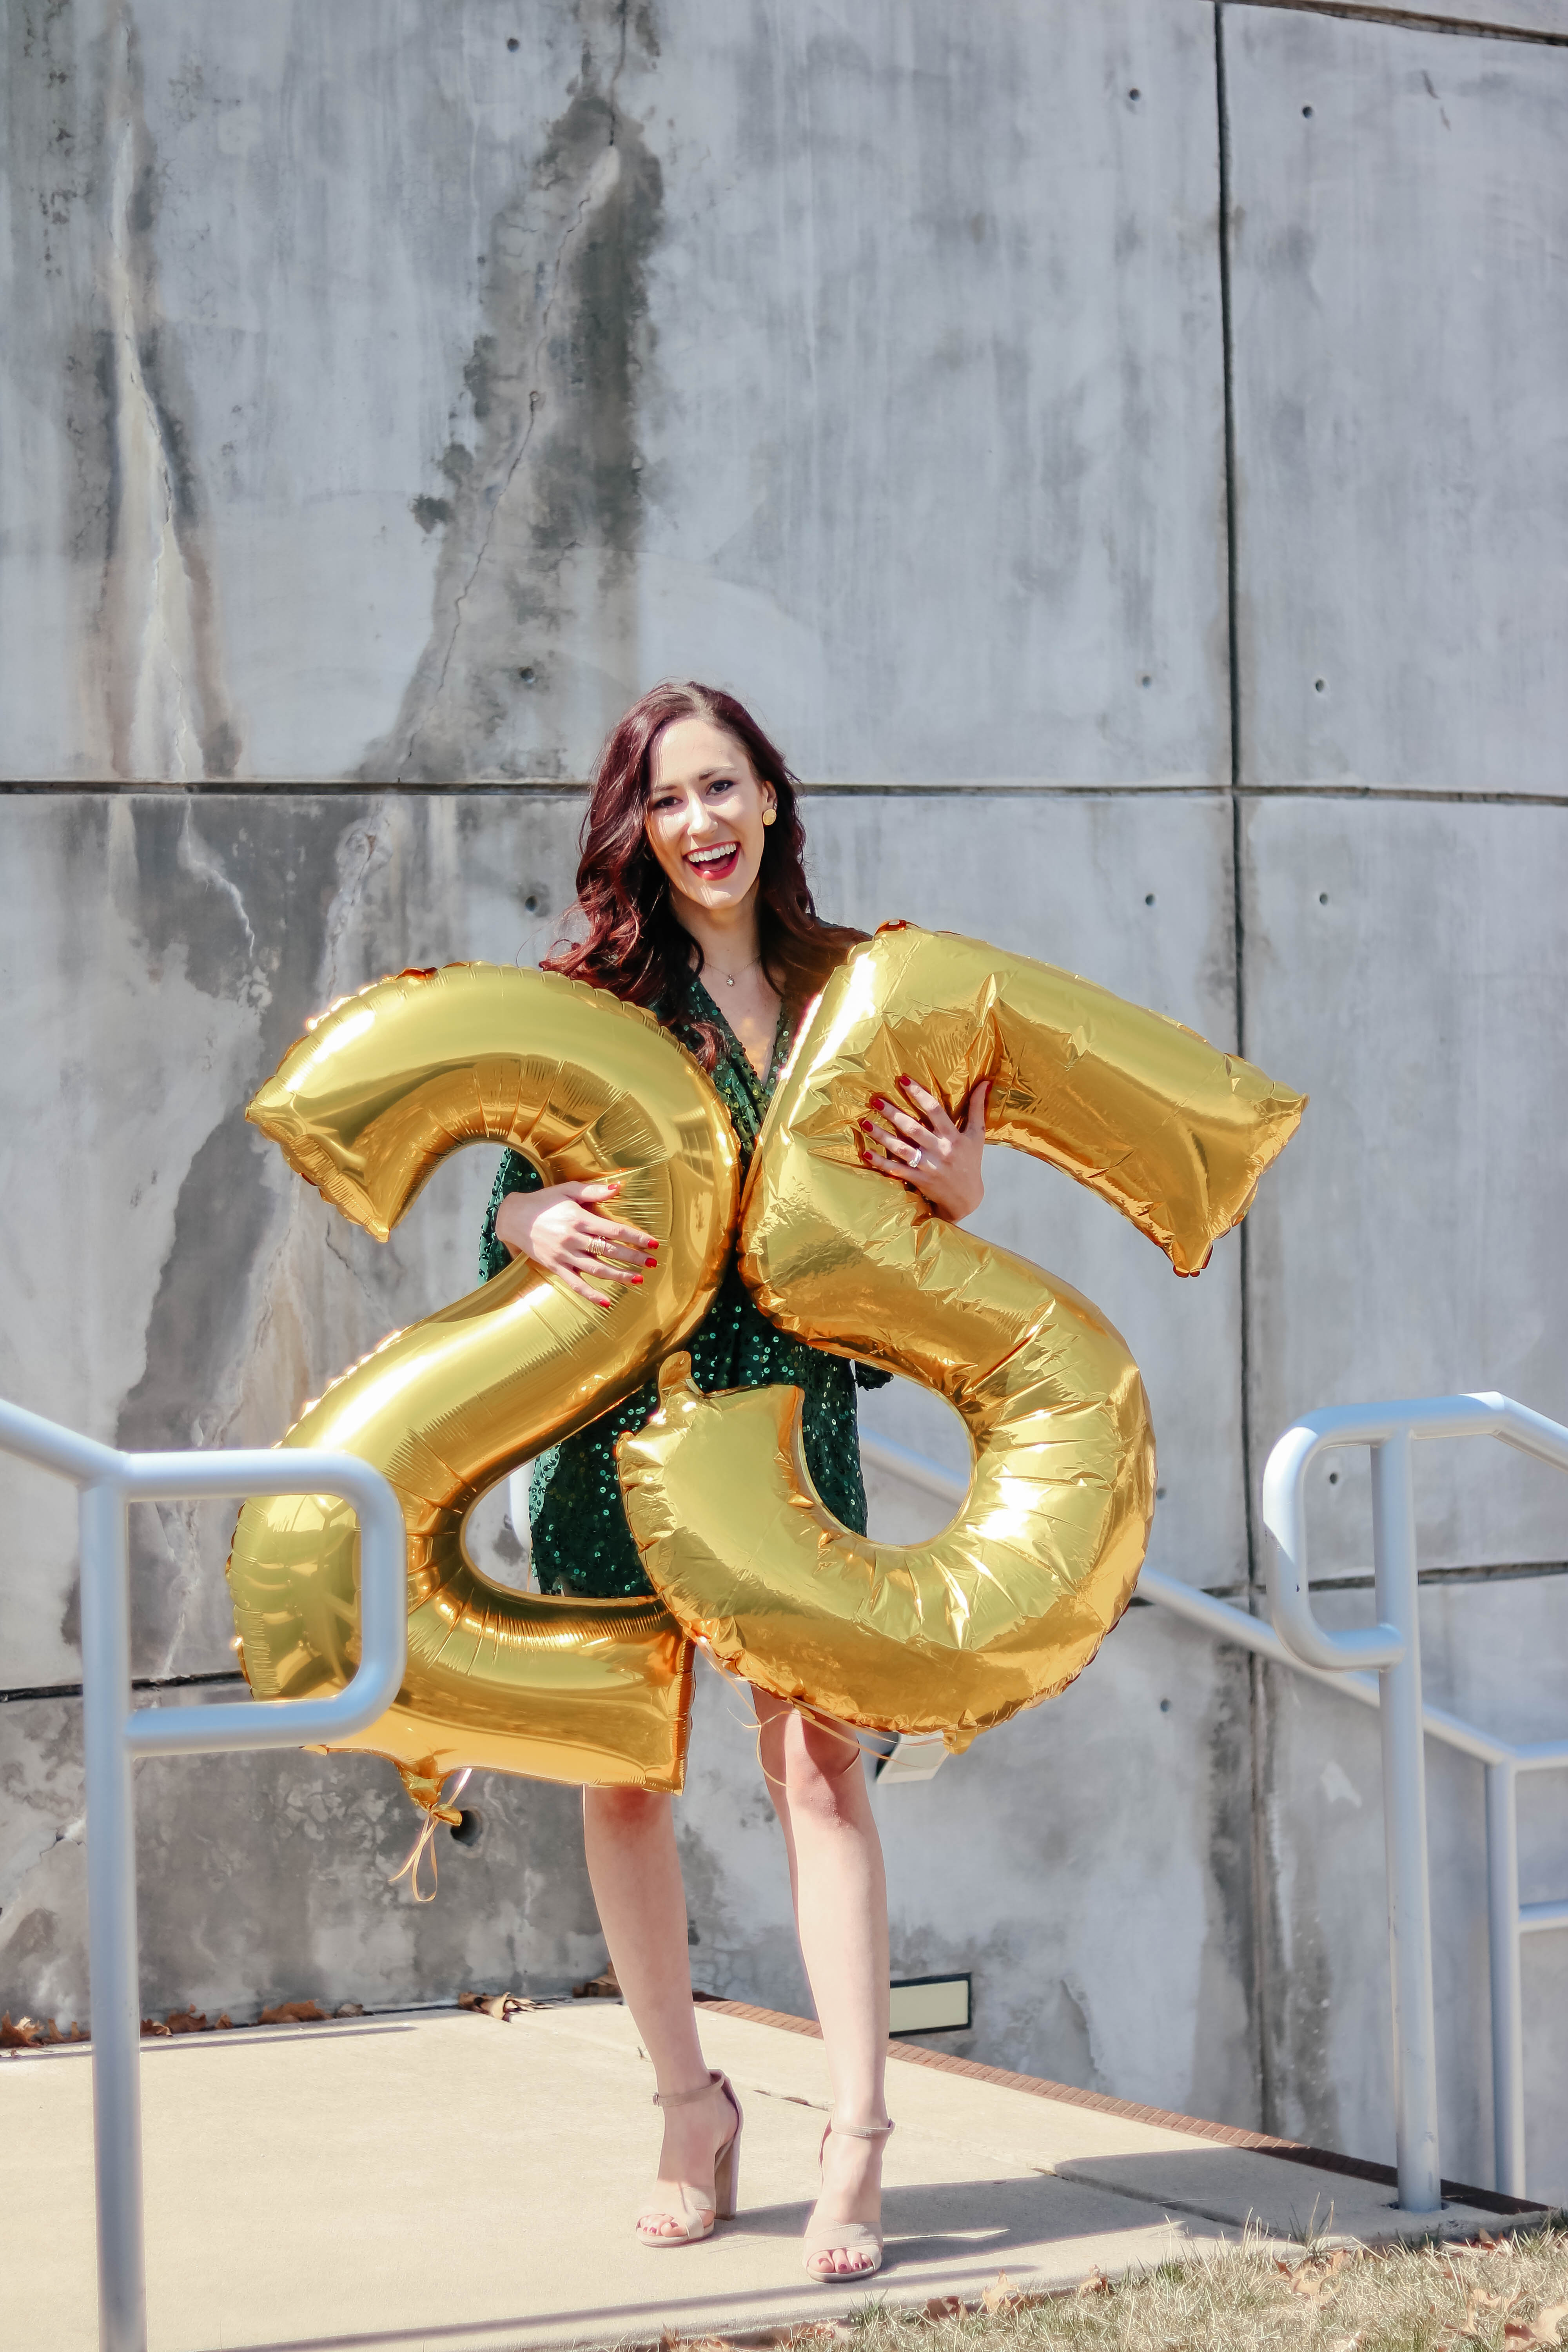 It's my 25th BIrthday! Celebrating with 25 FUN FACTS about me... (on Coming Up Roses)